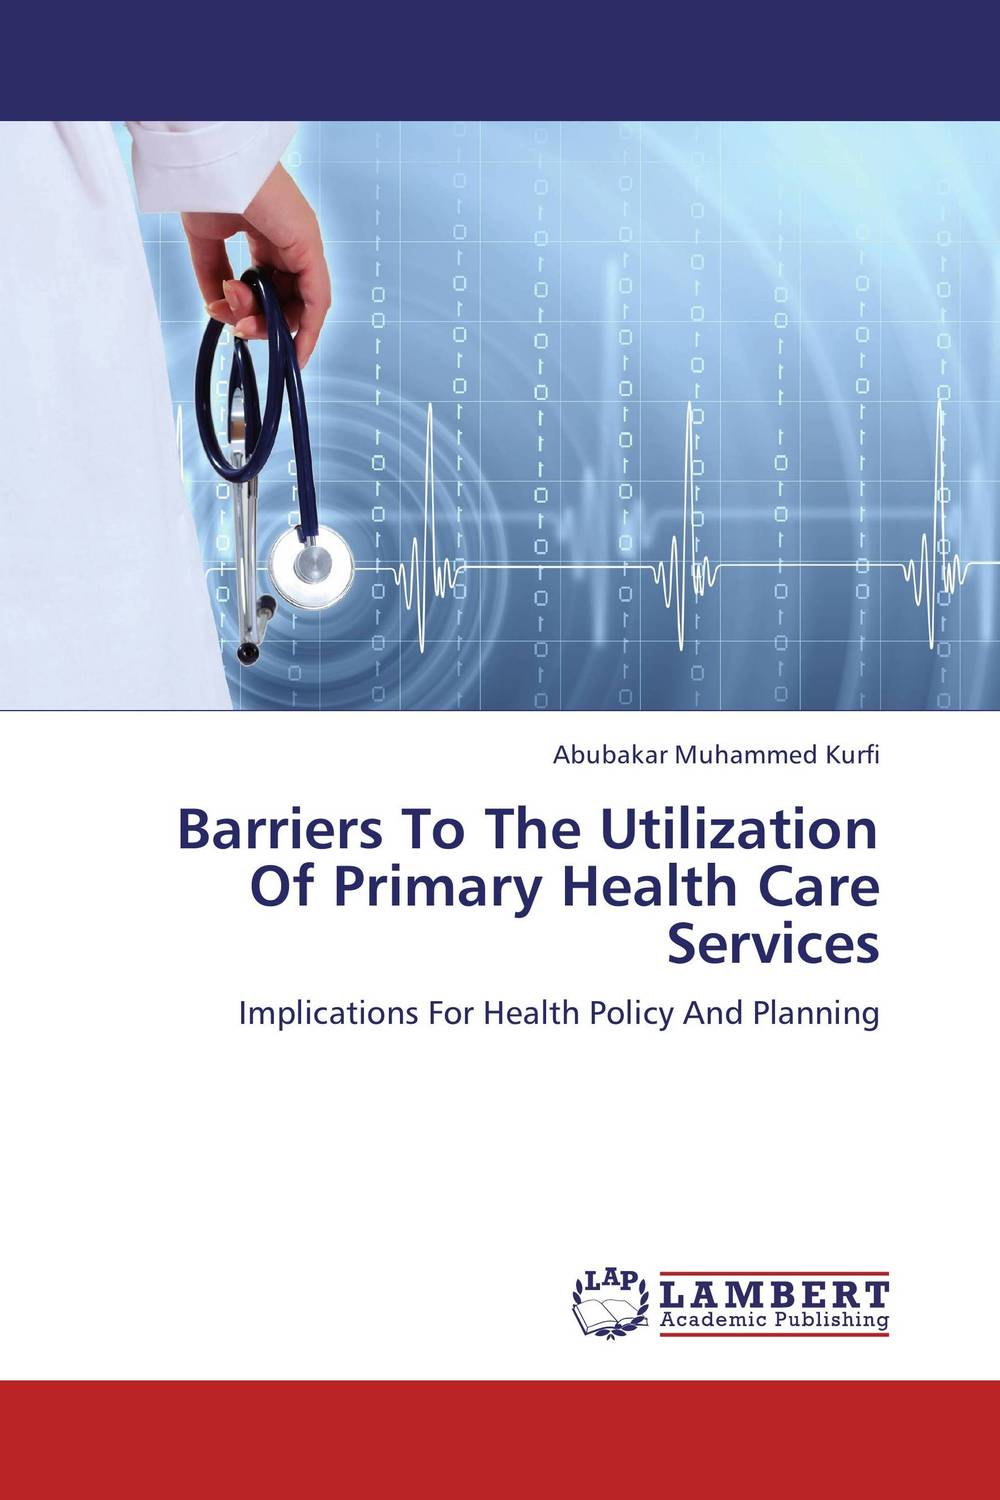 Barriers To The Utilization Of Primary Health Care Services